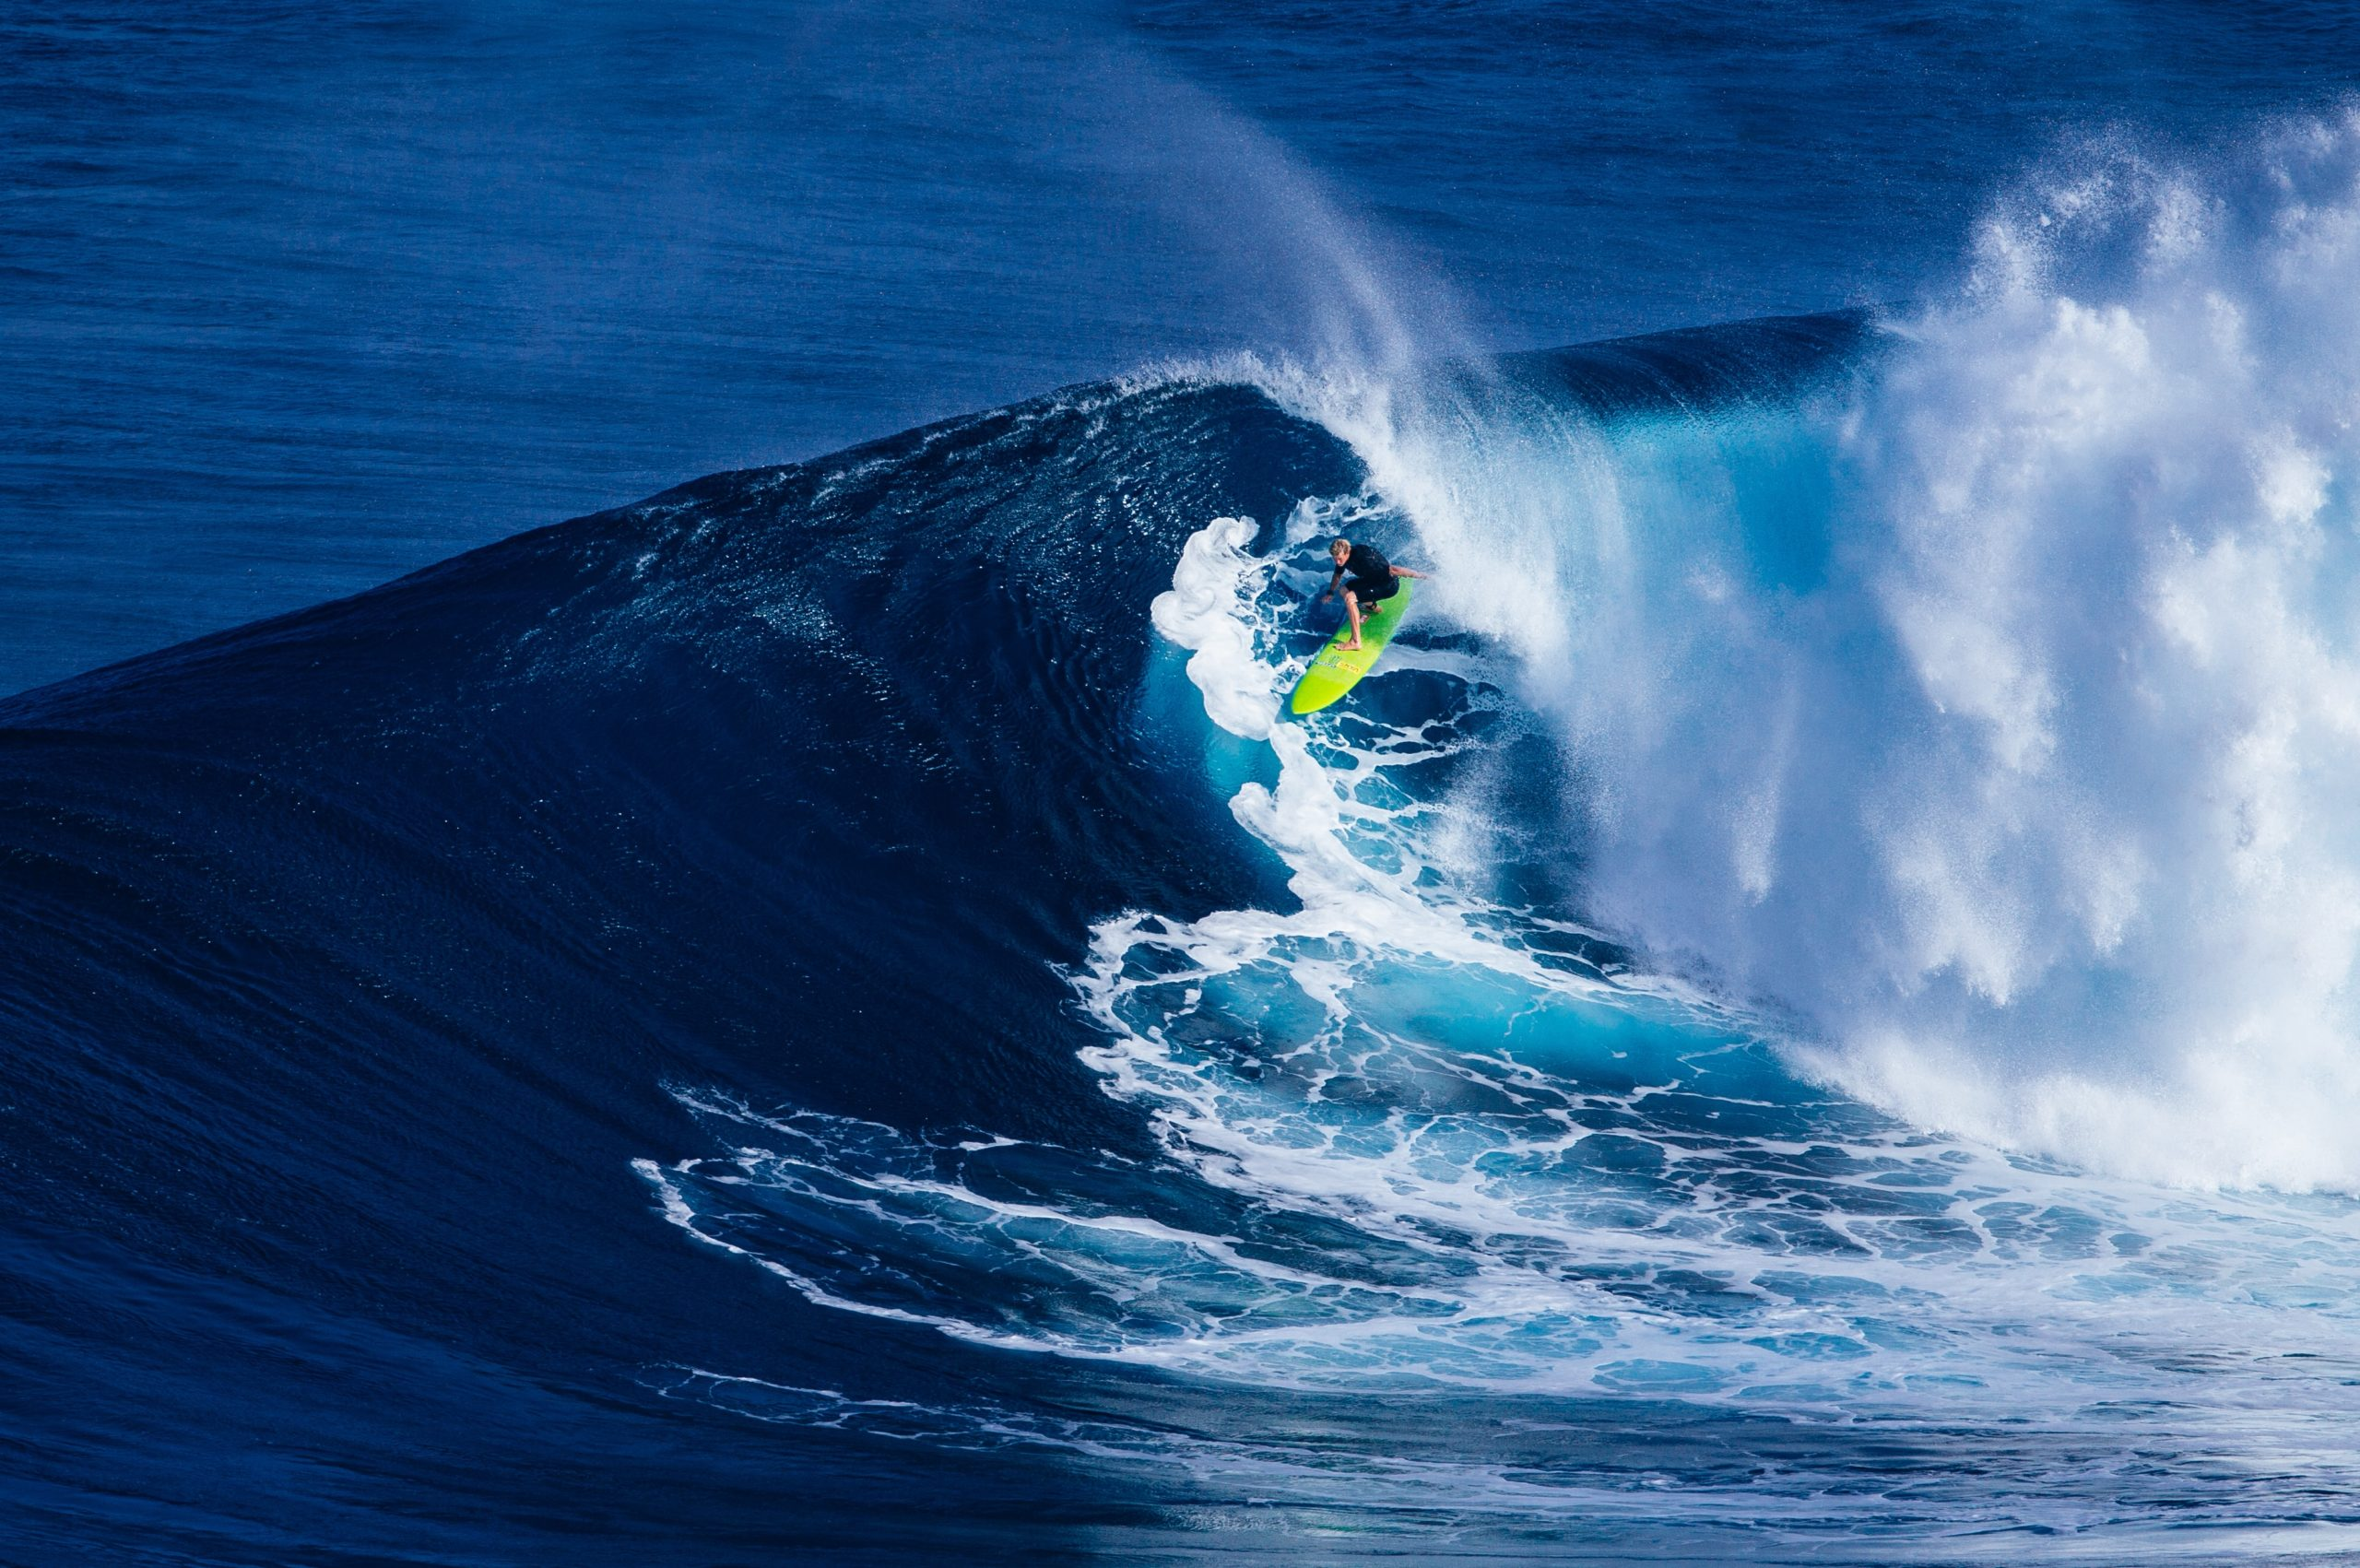 Some Of The Amazing Goodness In Surfing